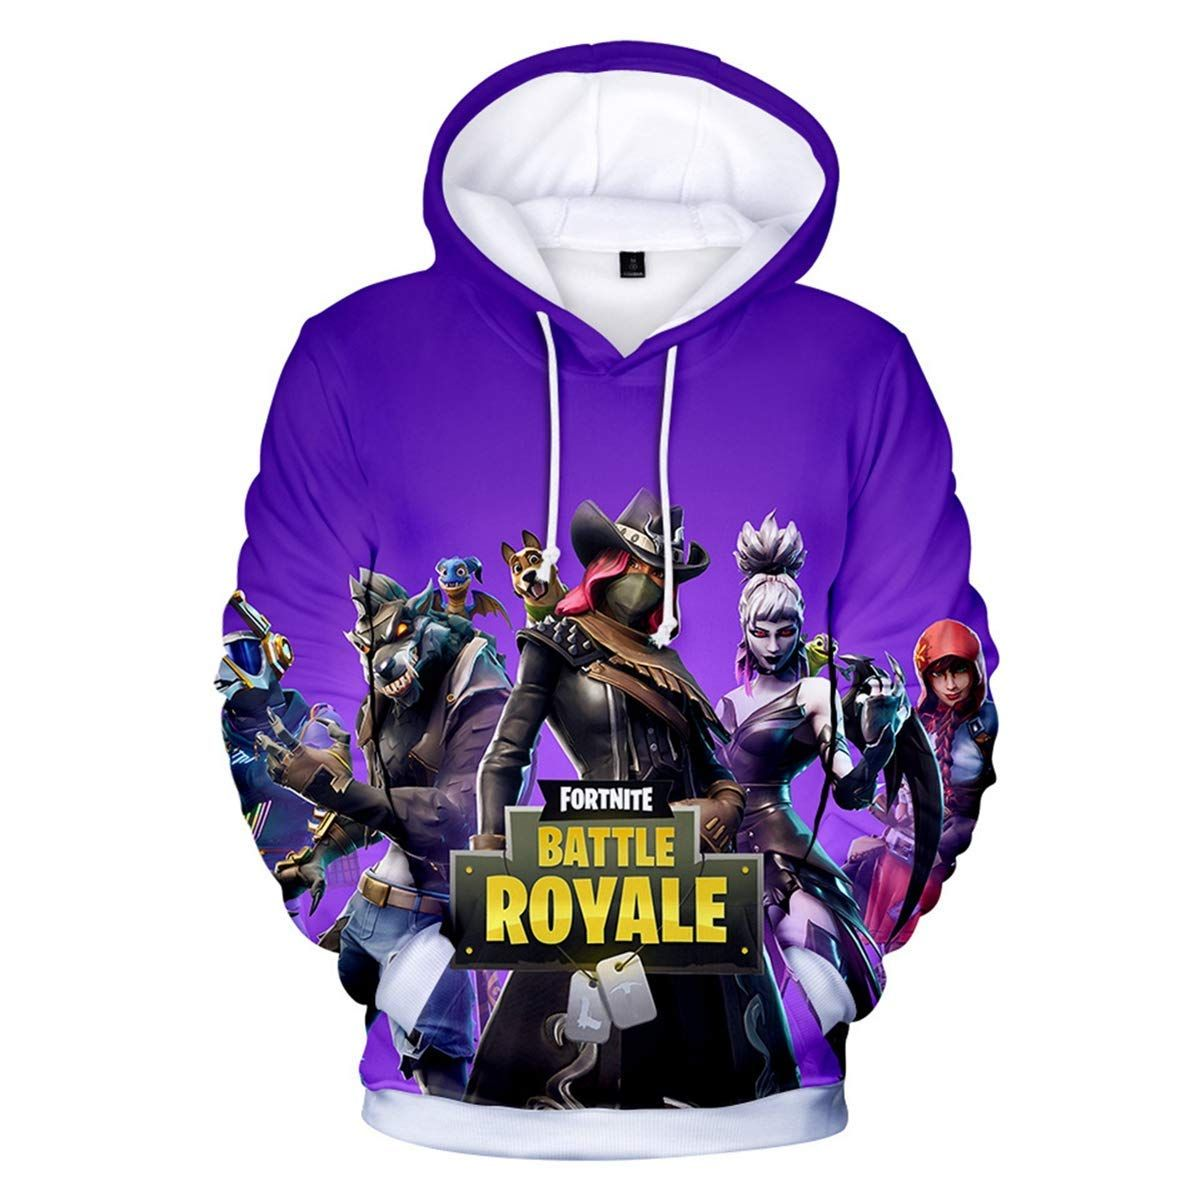 e5dbb7c53429 Amazon.com  Fortnite 3D Hoodie Novelty Youth Game Unisex Classic Sweatshirt  Pullover Pocket